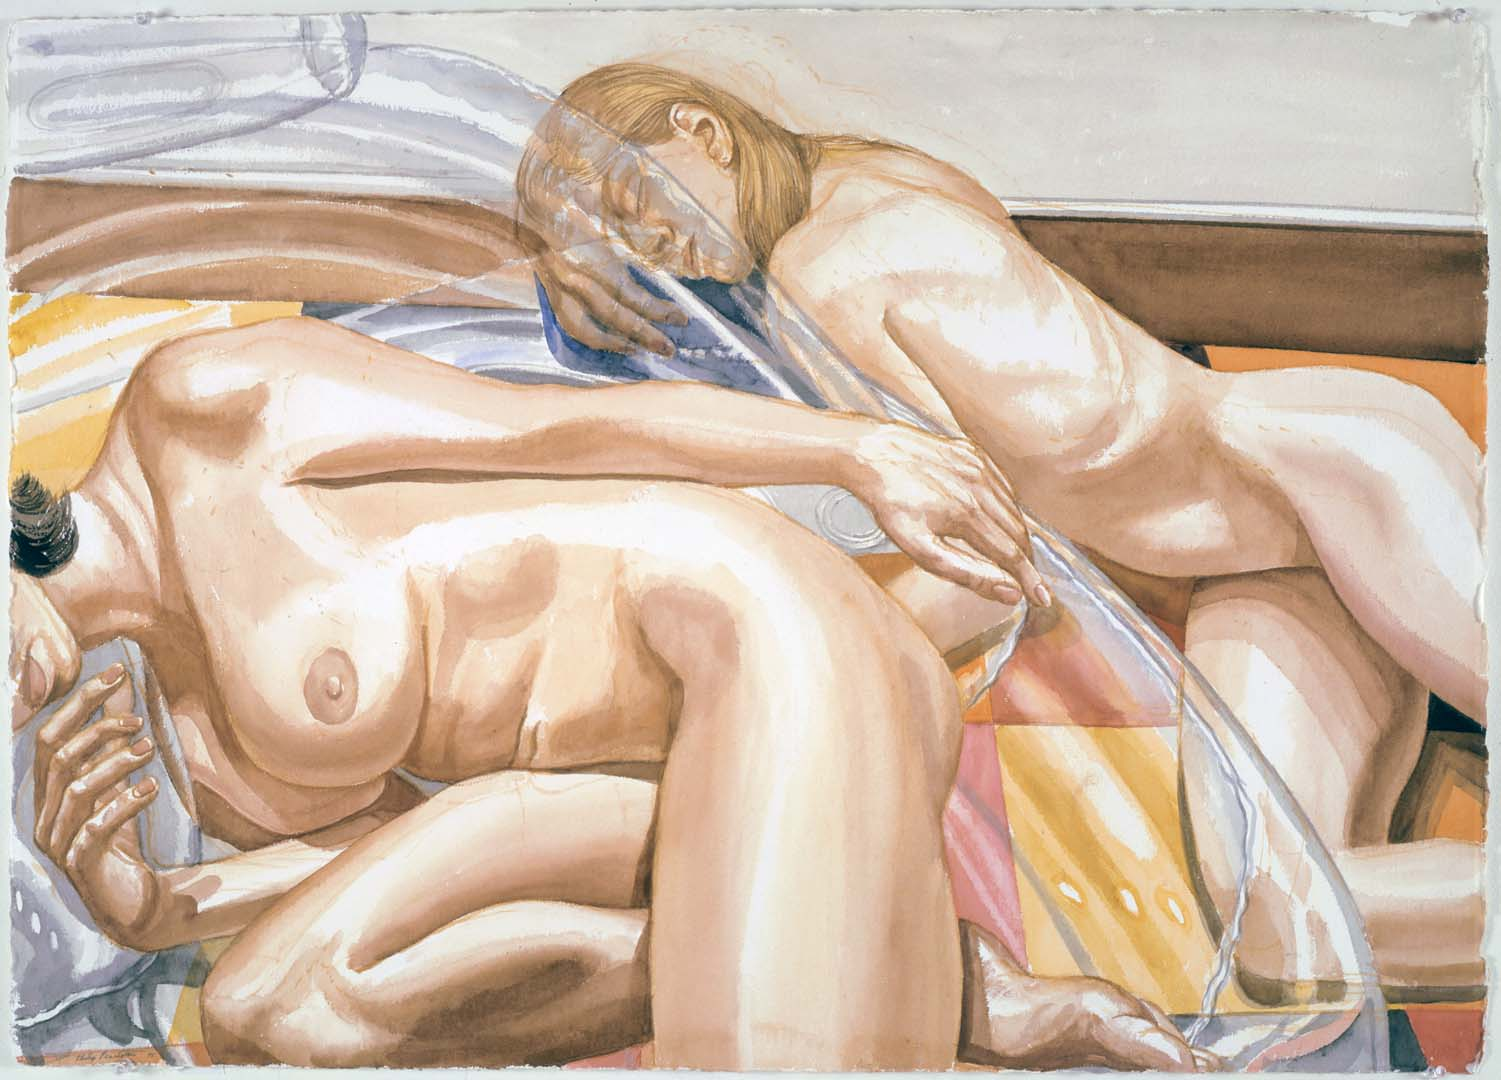 1998 Two Models with Inflatable Chair and Linolium Floor Watercolor on Paper 29.375 x 40